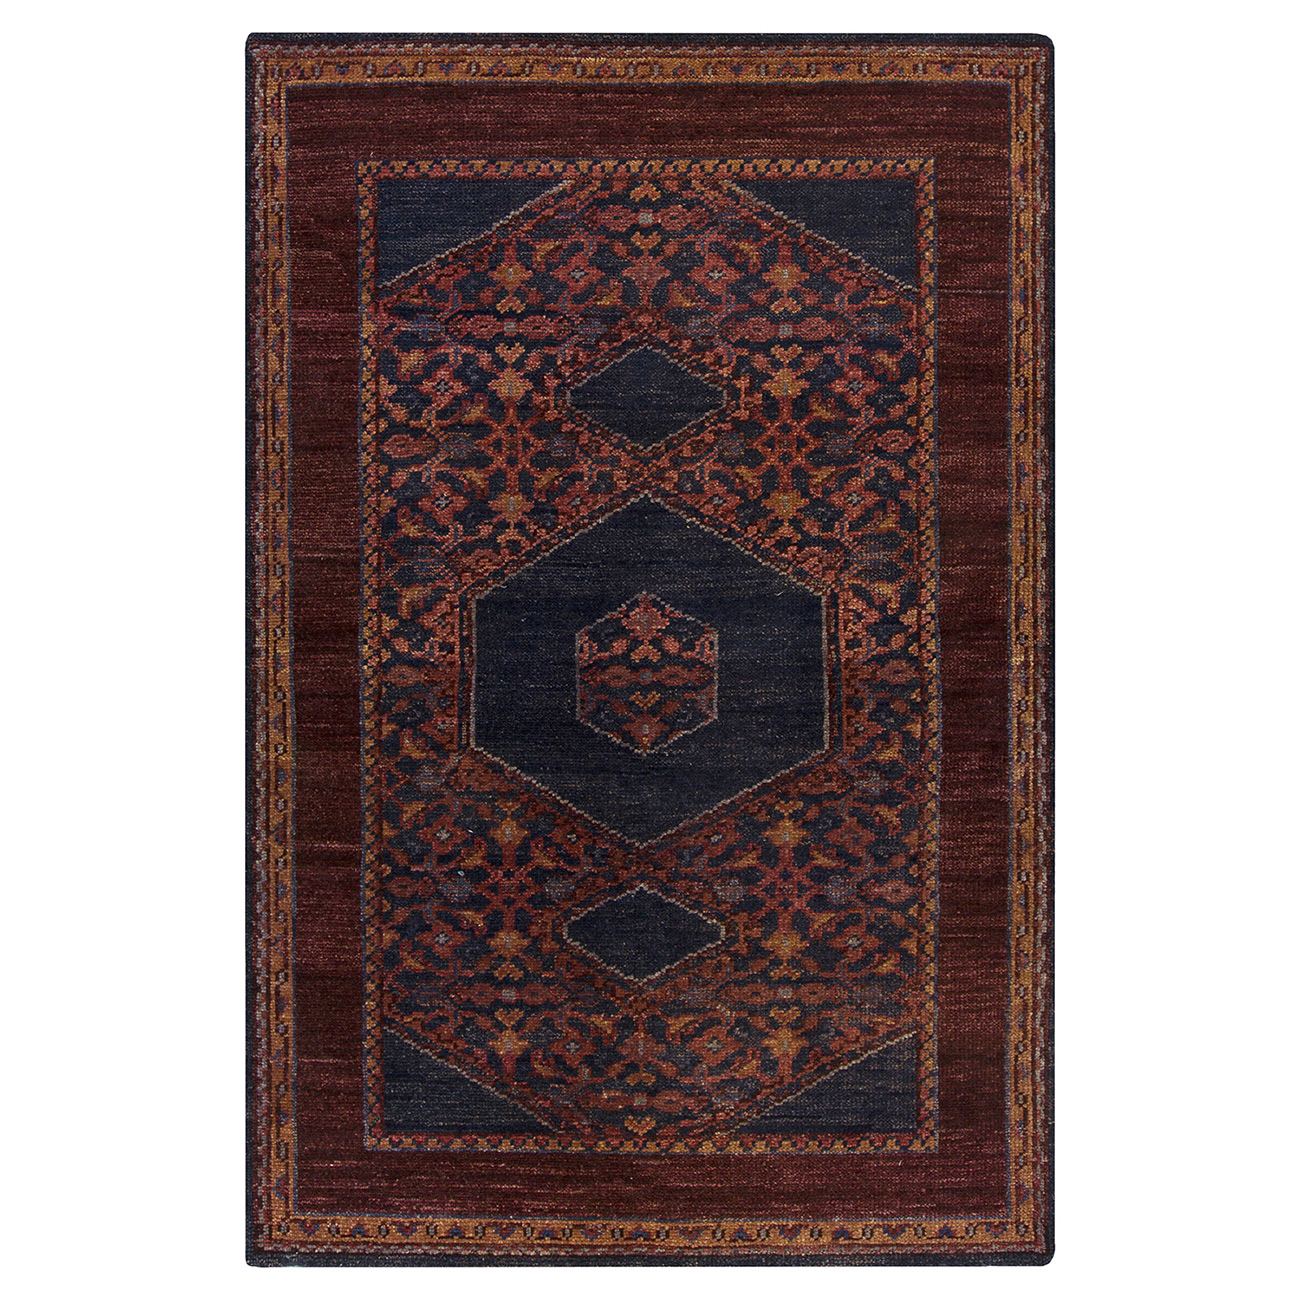 Priya Bazaar Antique Wash Burgundy Wool Rug - Sample